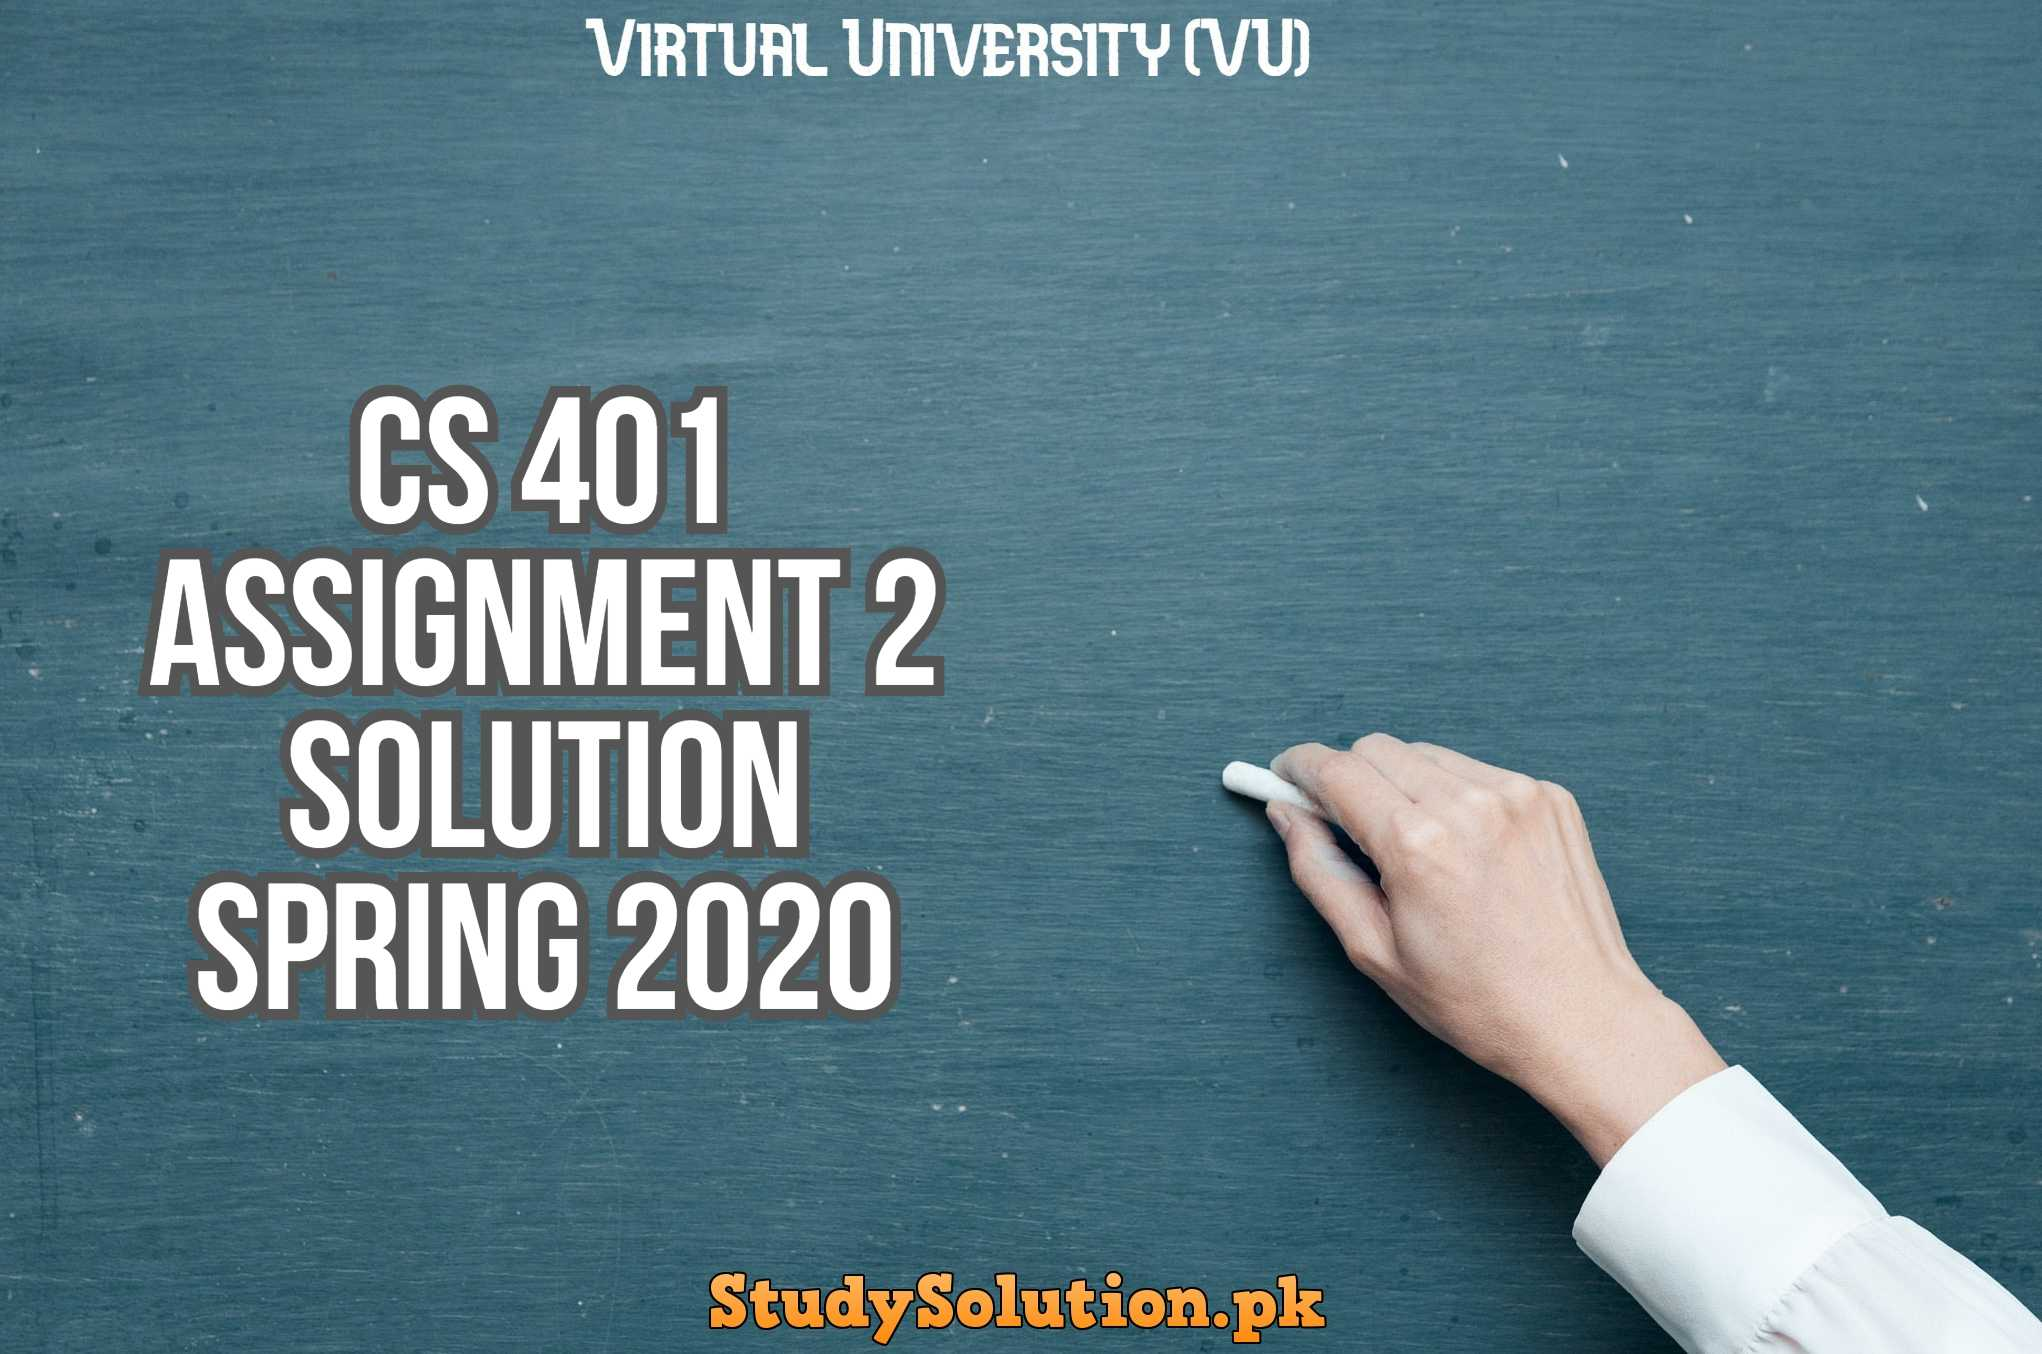 CS 401 Assignment No 2 Solution Spring 2020